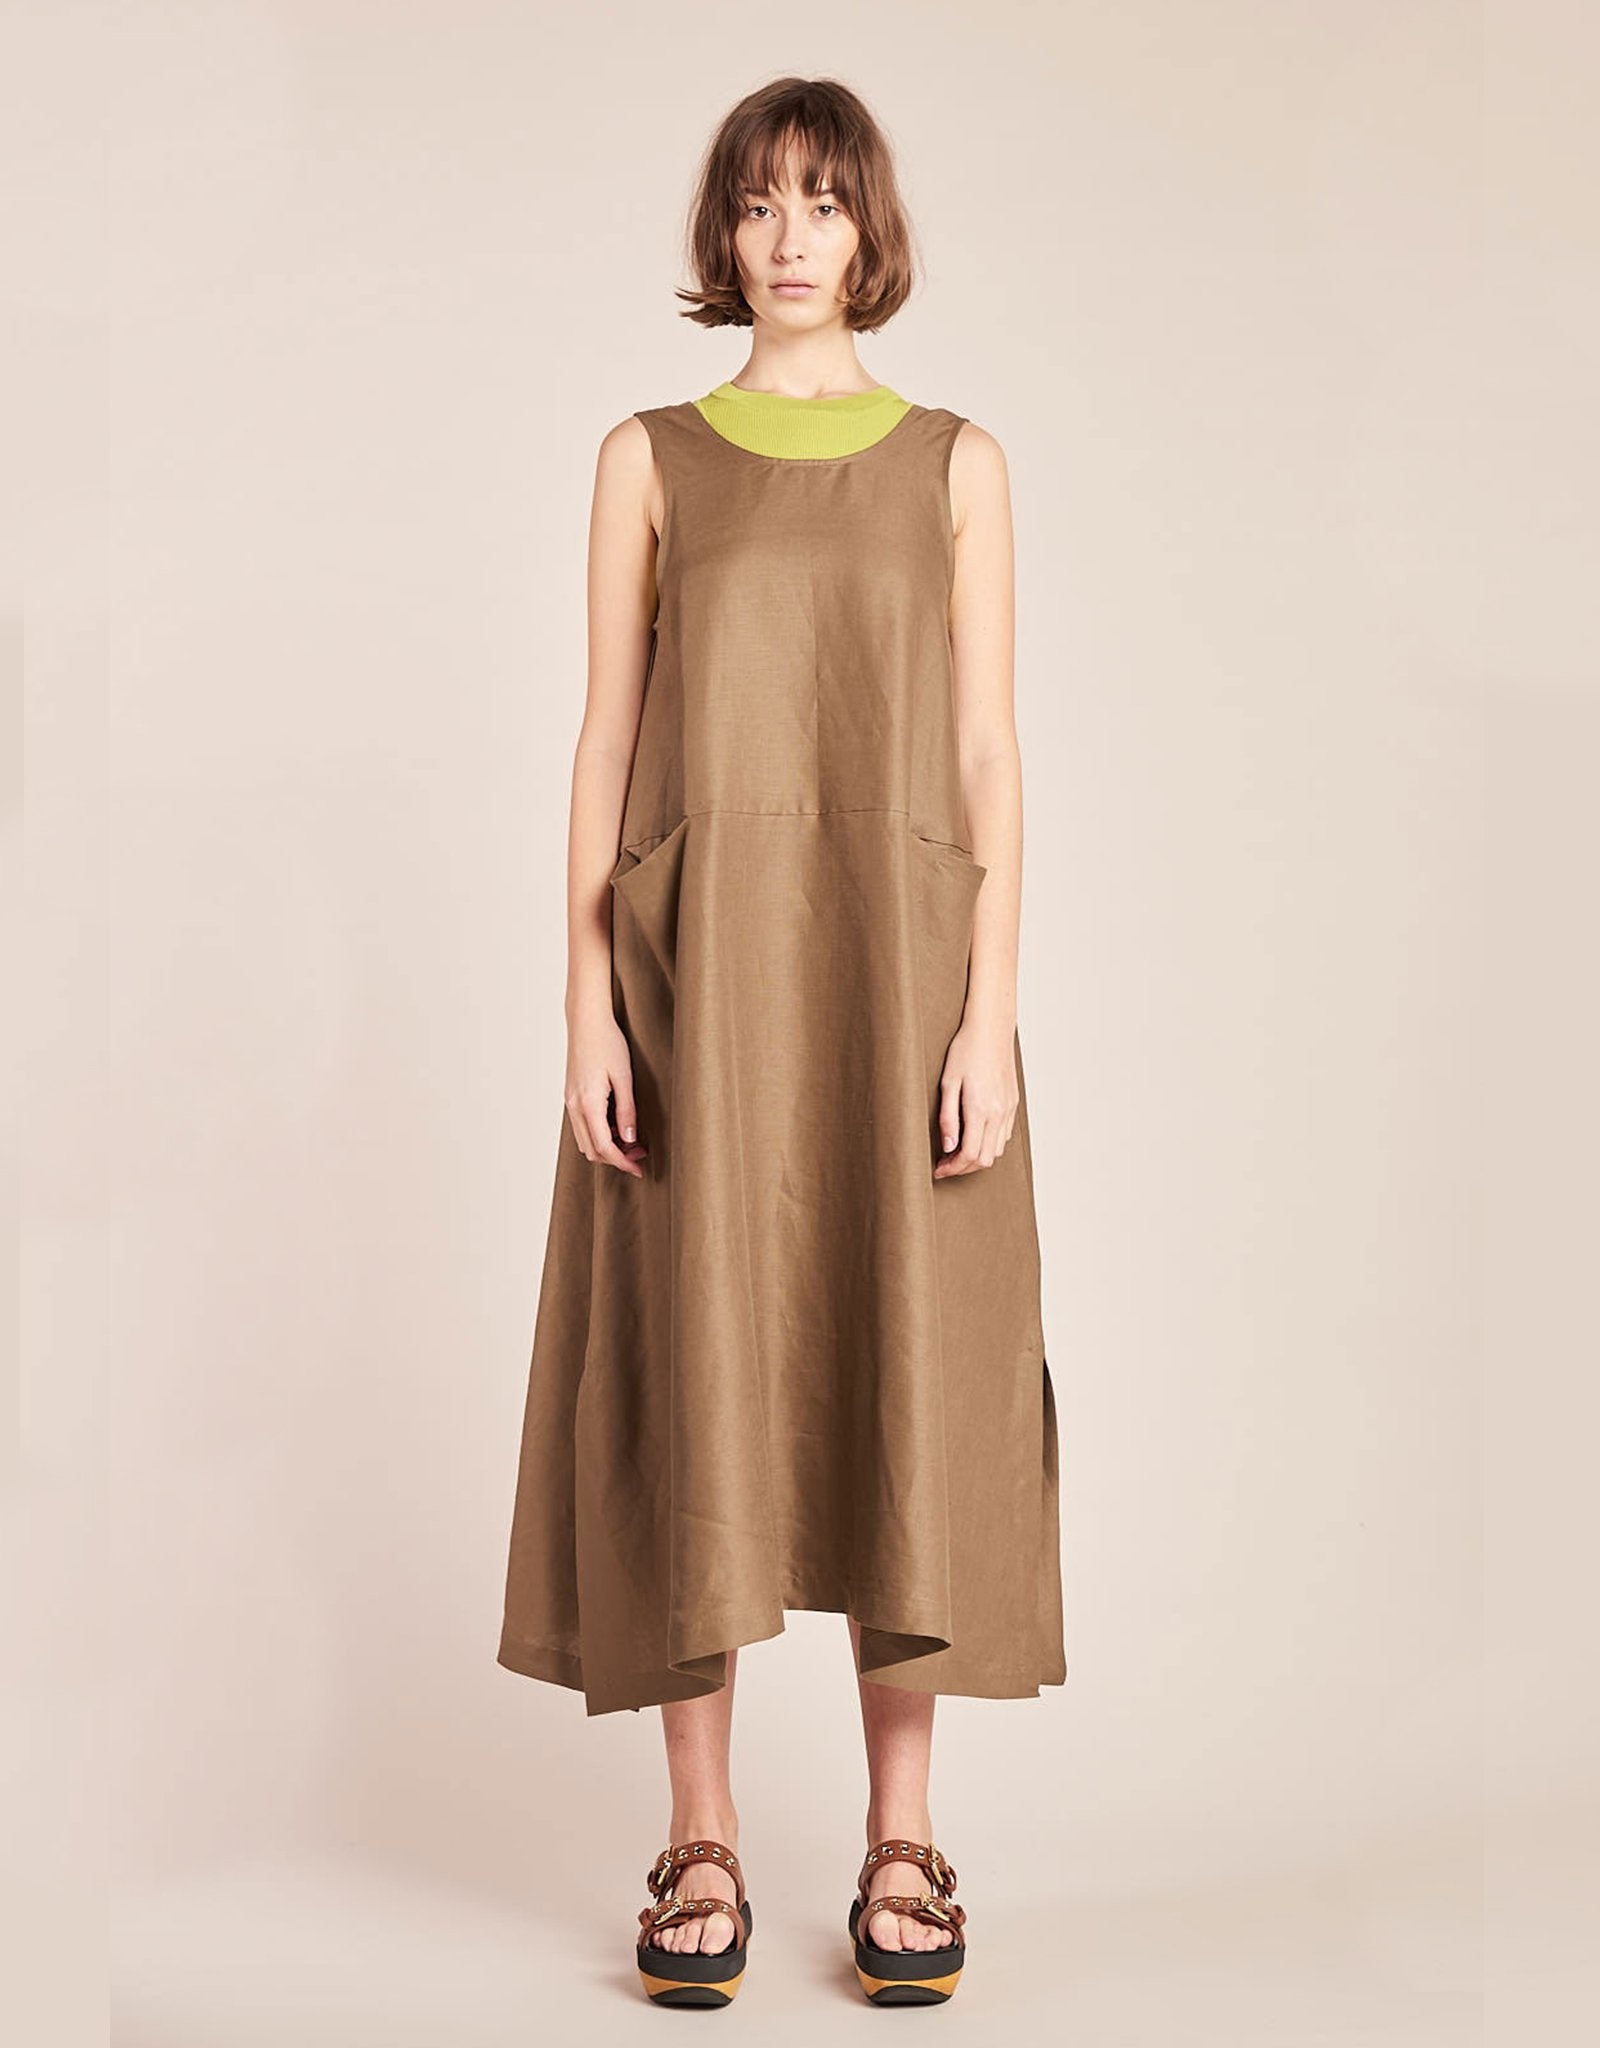 Model wears Kloke Luna Dress in Tobacco from Shop FAWN